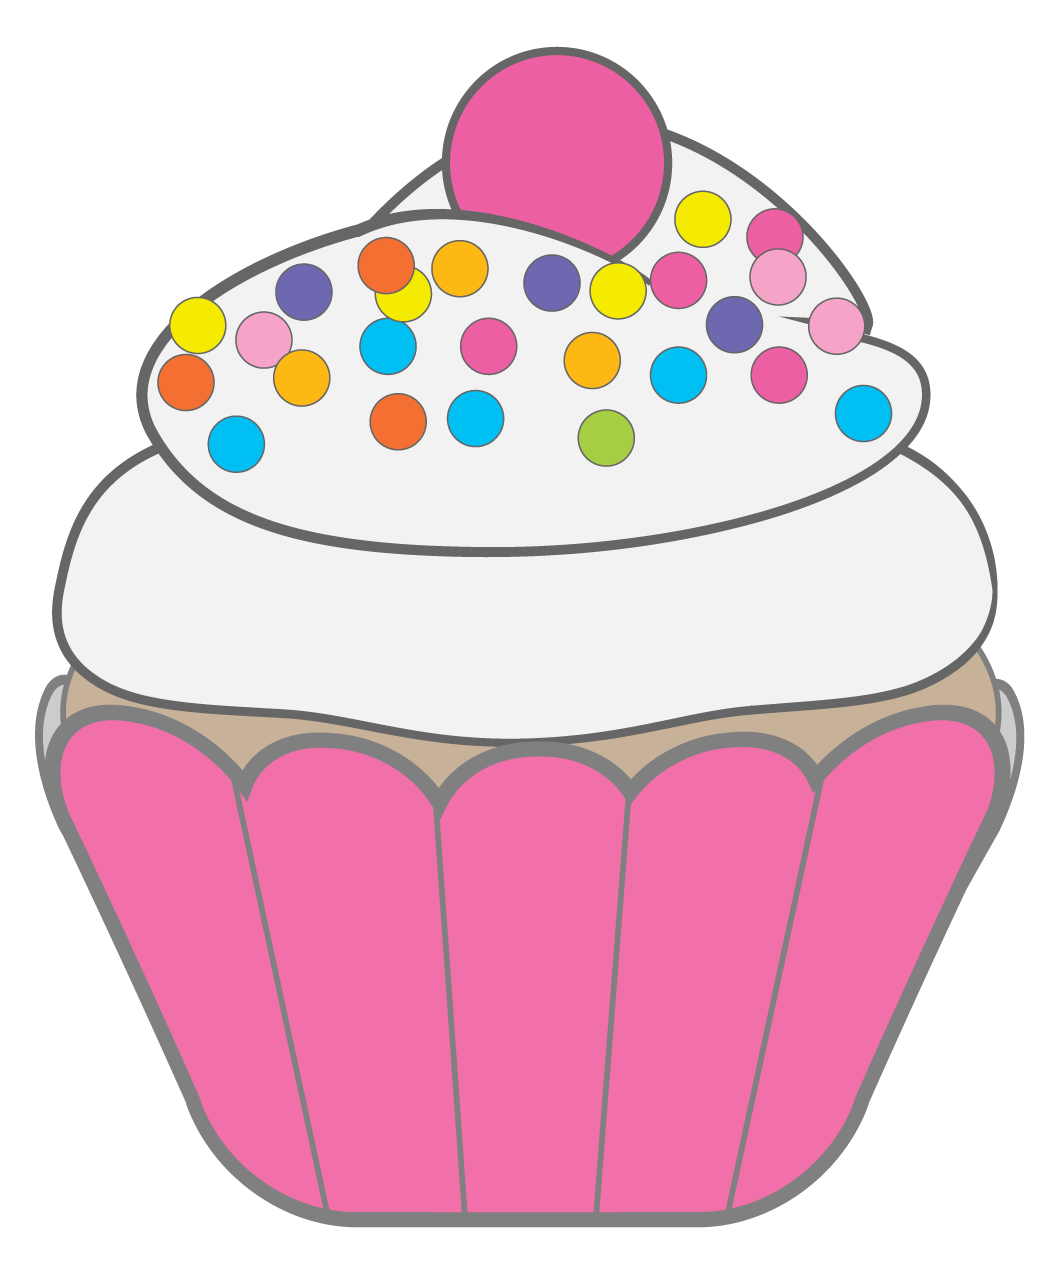 Cupcake Clipart Free Download.